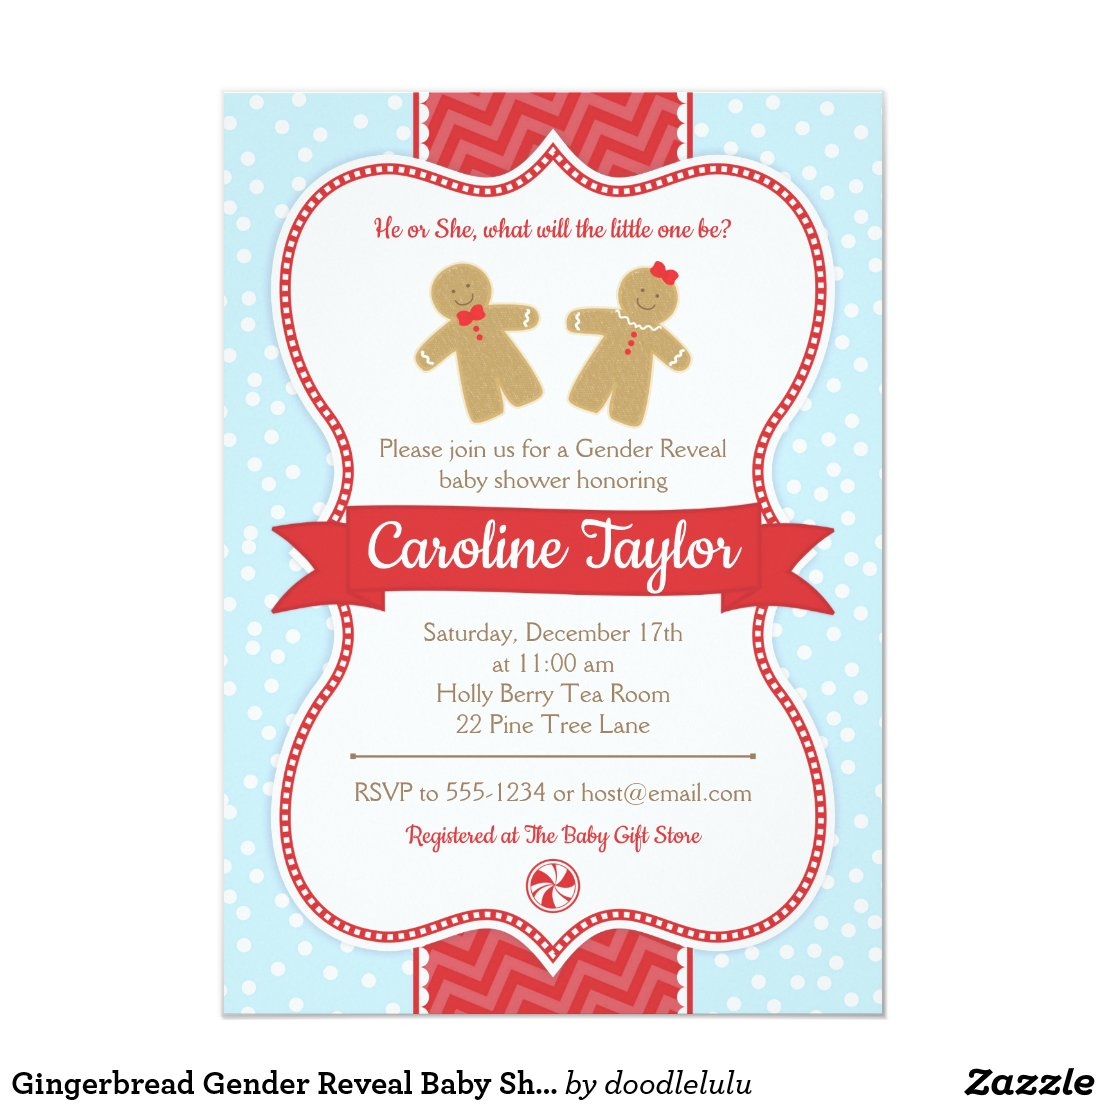 Gingerbread Gender Reveal Baby Shower Invitation